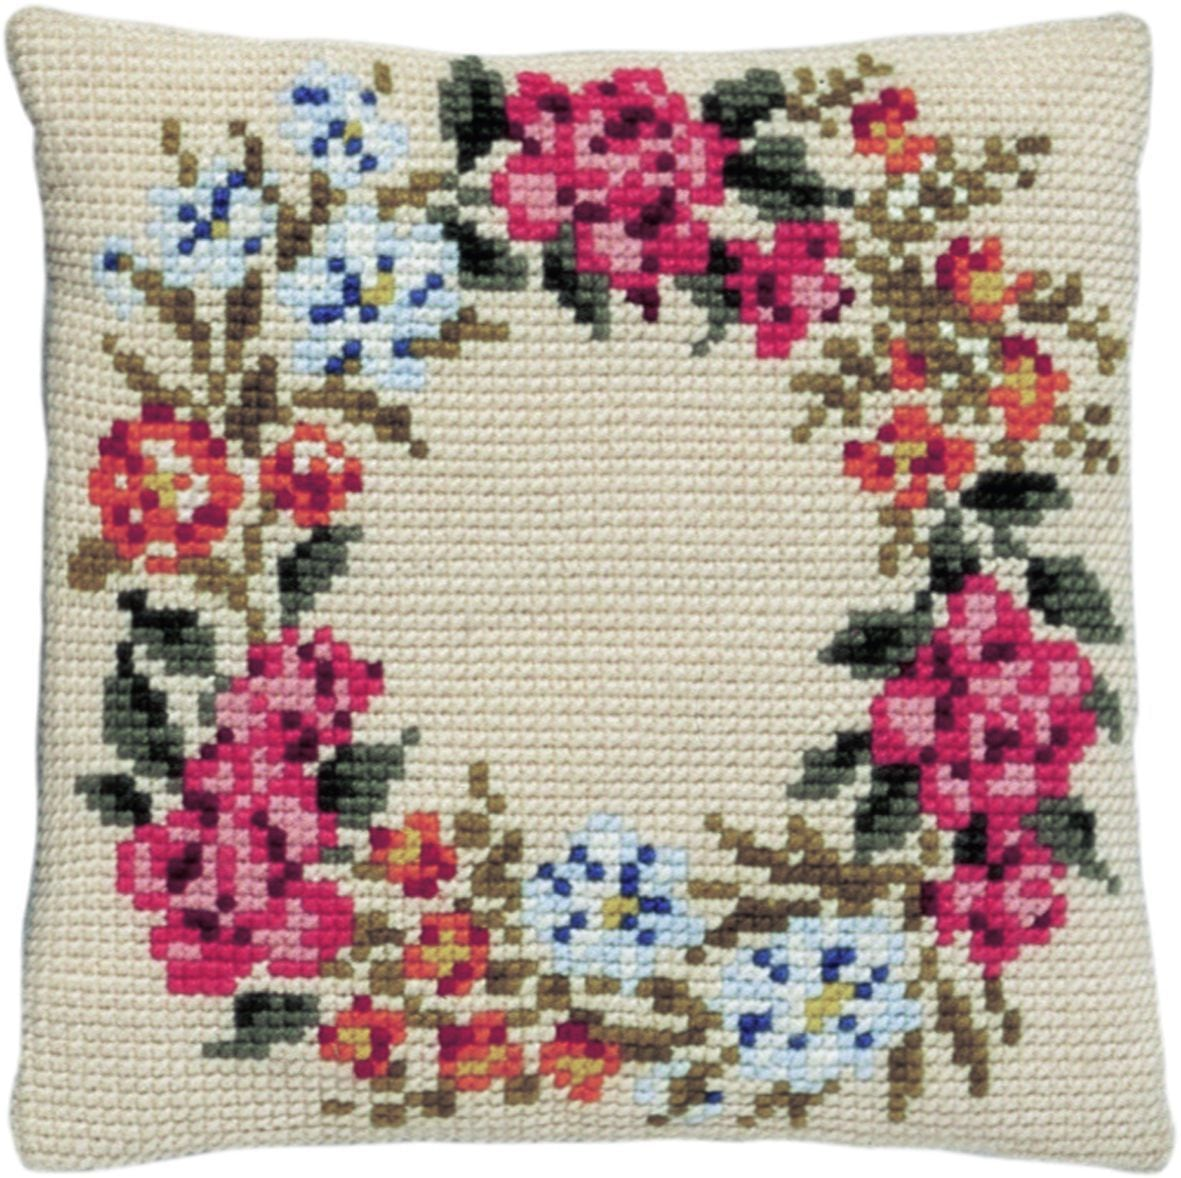 cross stitch cushion flower garland printed